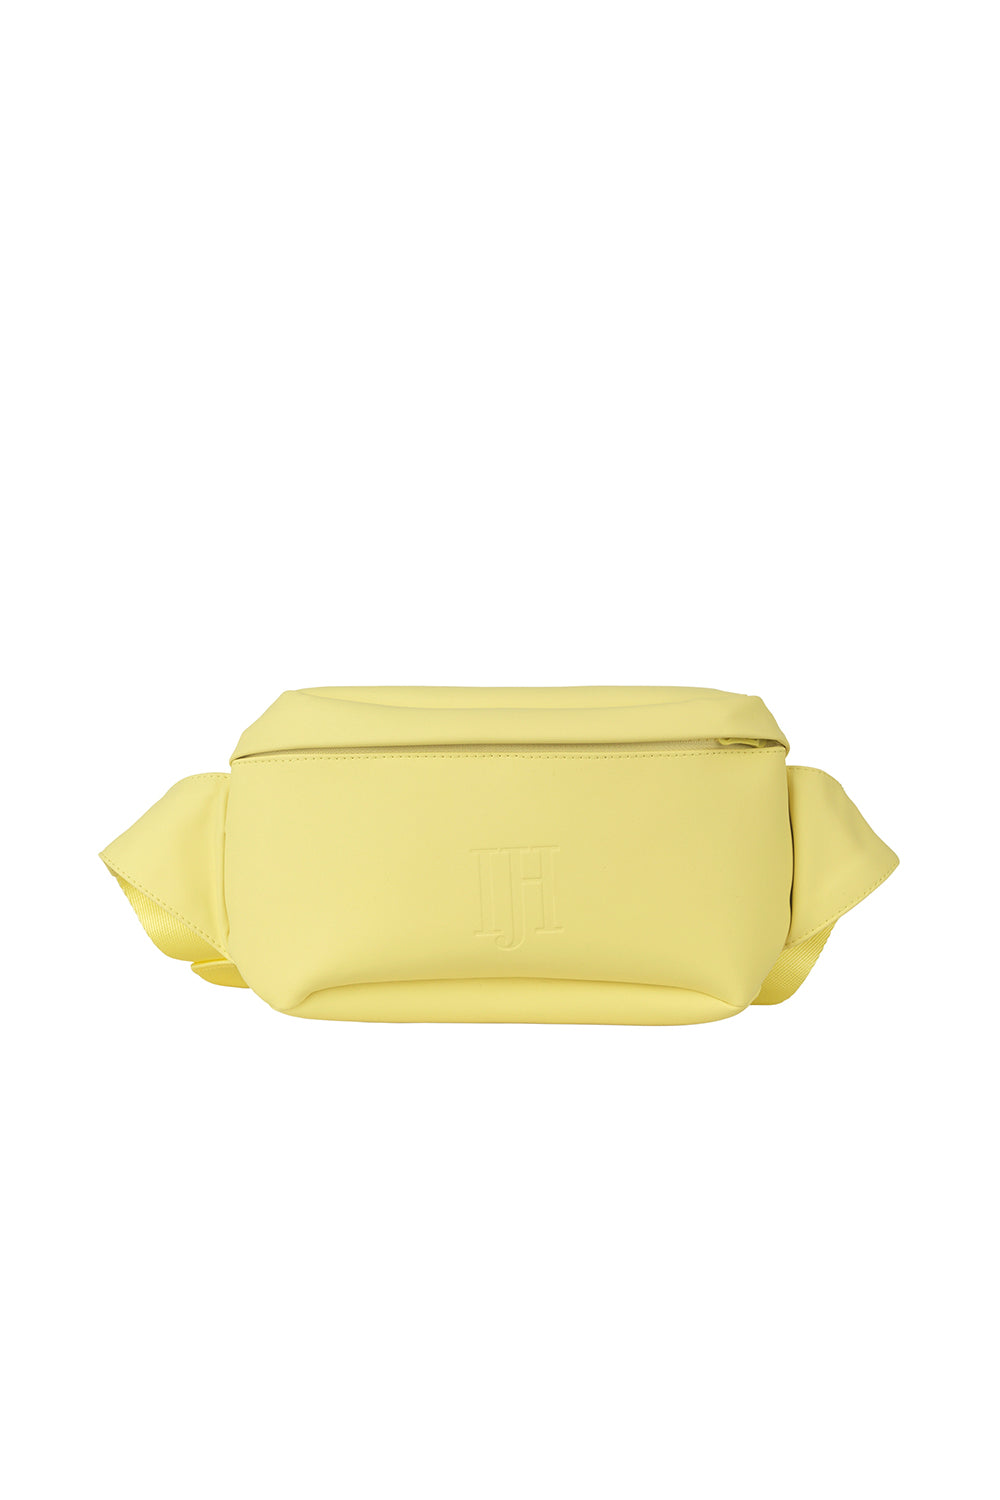 Ilse Jacobsen / Sunbeam Bum Bag / Yellow